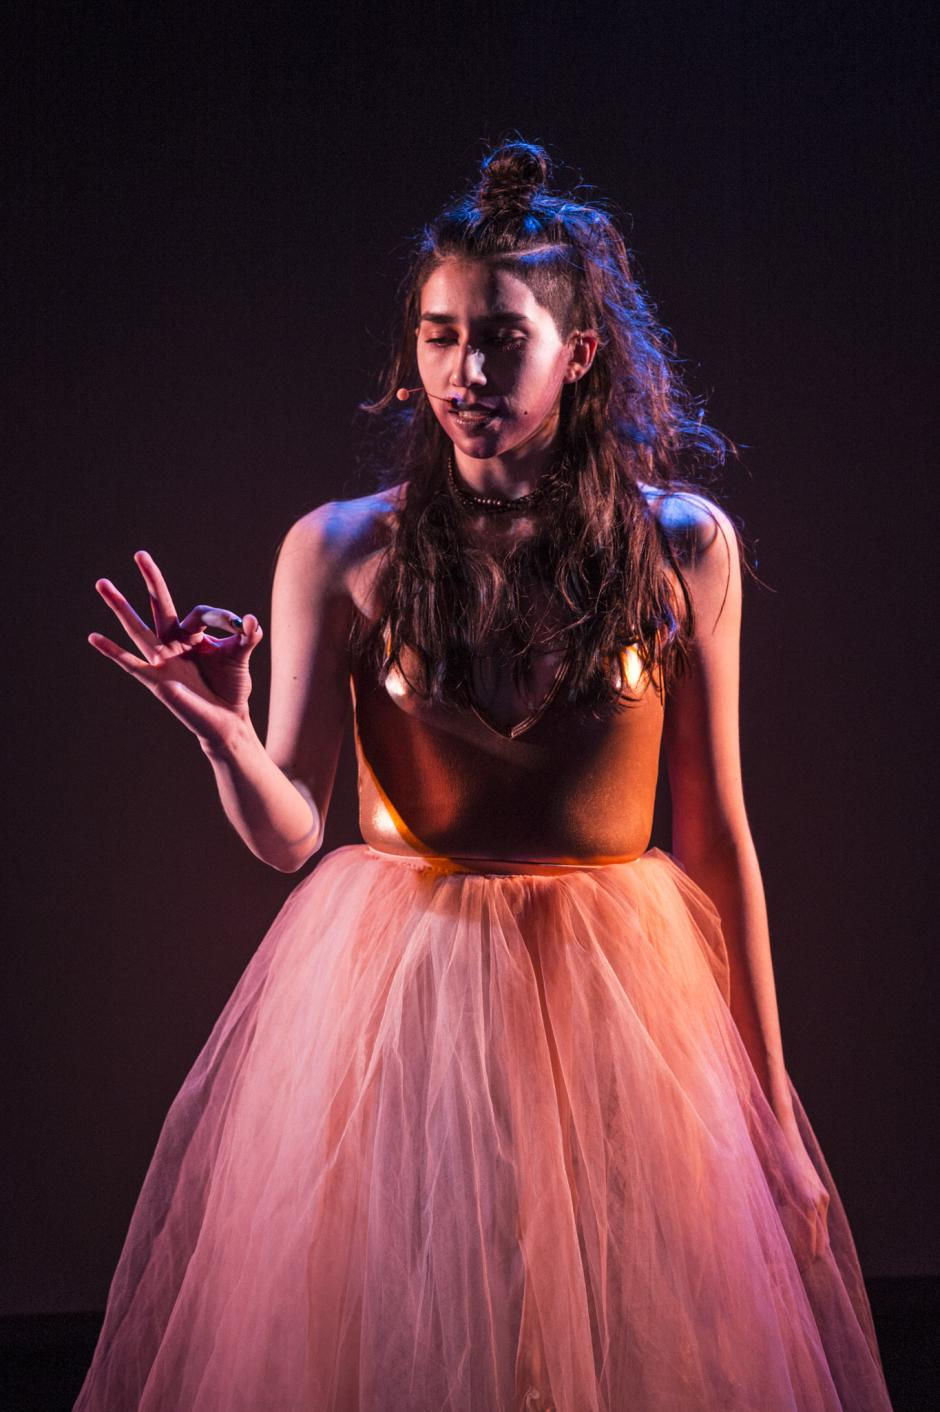 A woman with a headset mic wearing a ballet outfit performs spoken word.